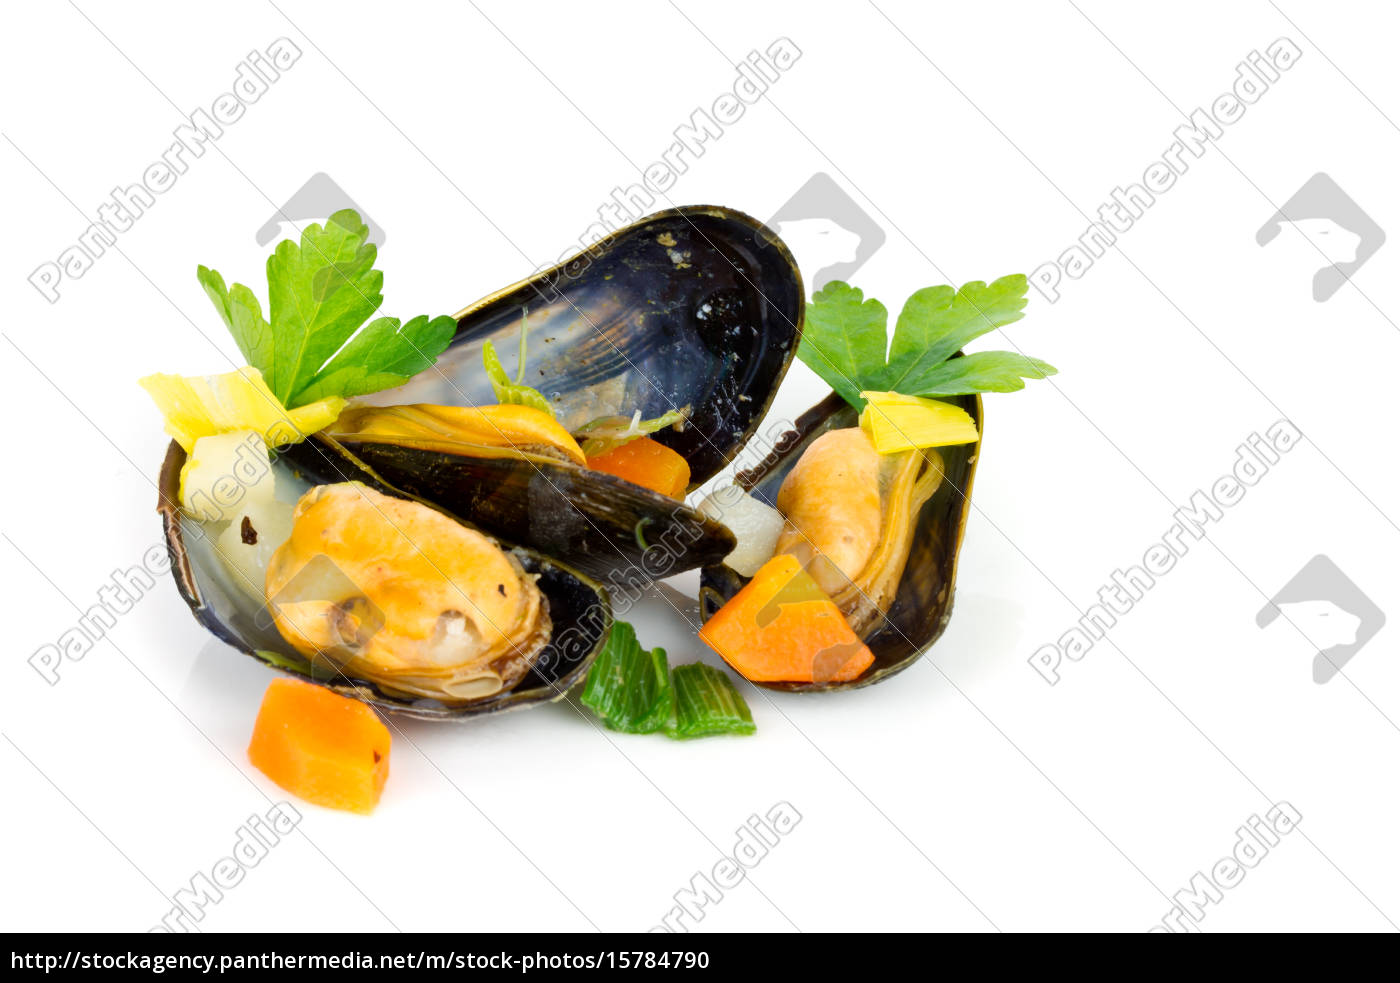 cooked, mussels - 15784790